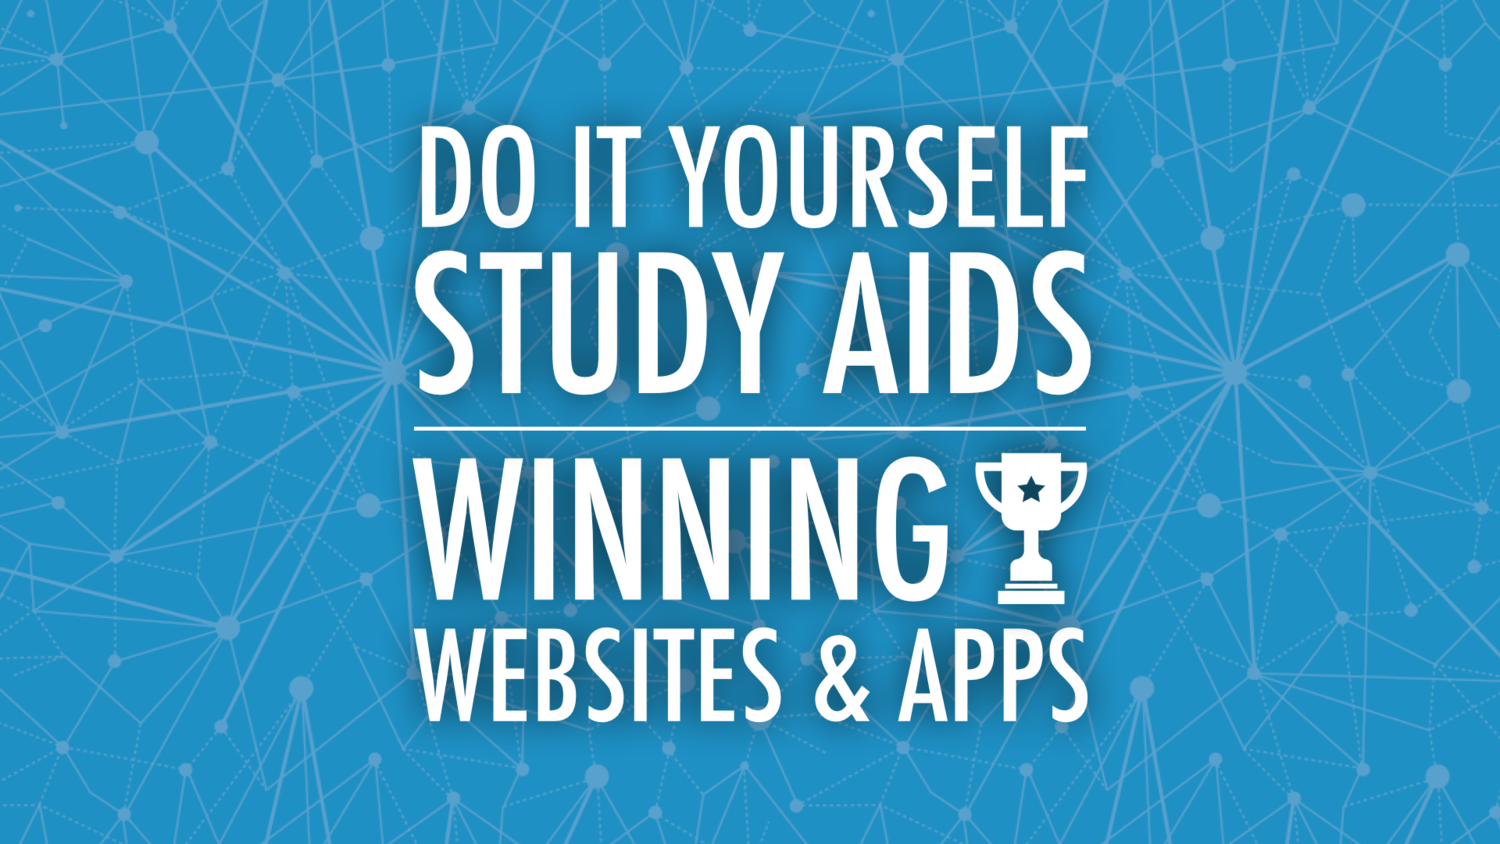 Do it yourself study aids winning websites and apps learning in topic016g solutioingenieria Image collections